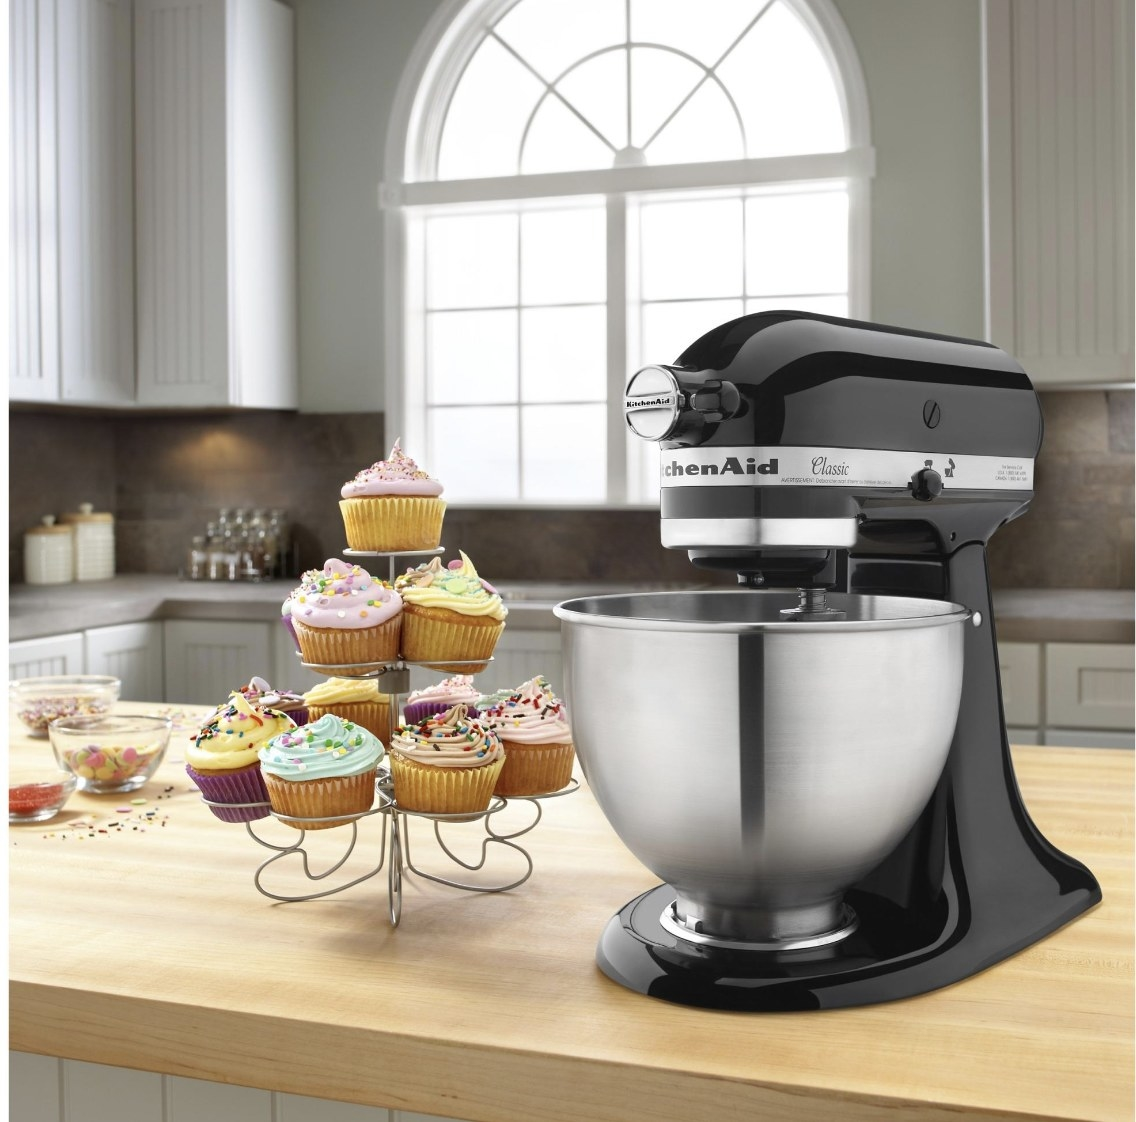 """The device has black base says """"KitchenAid"""" and a silver mixing bowl, and it's surrounded by cupcakes"""